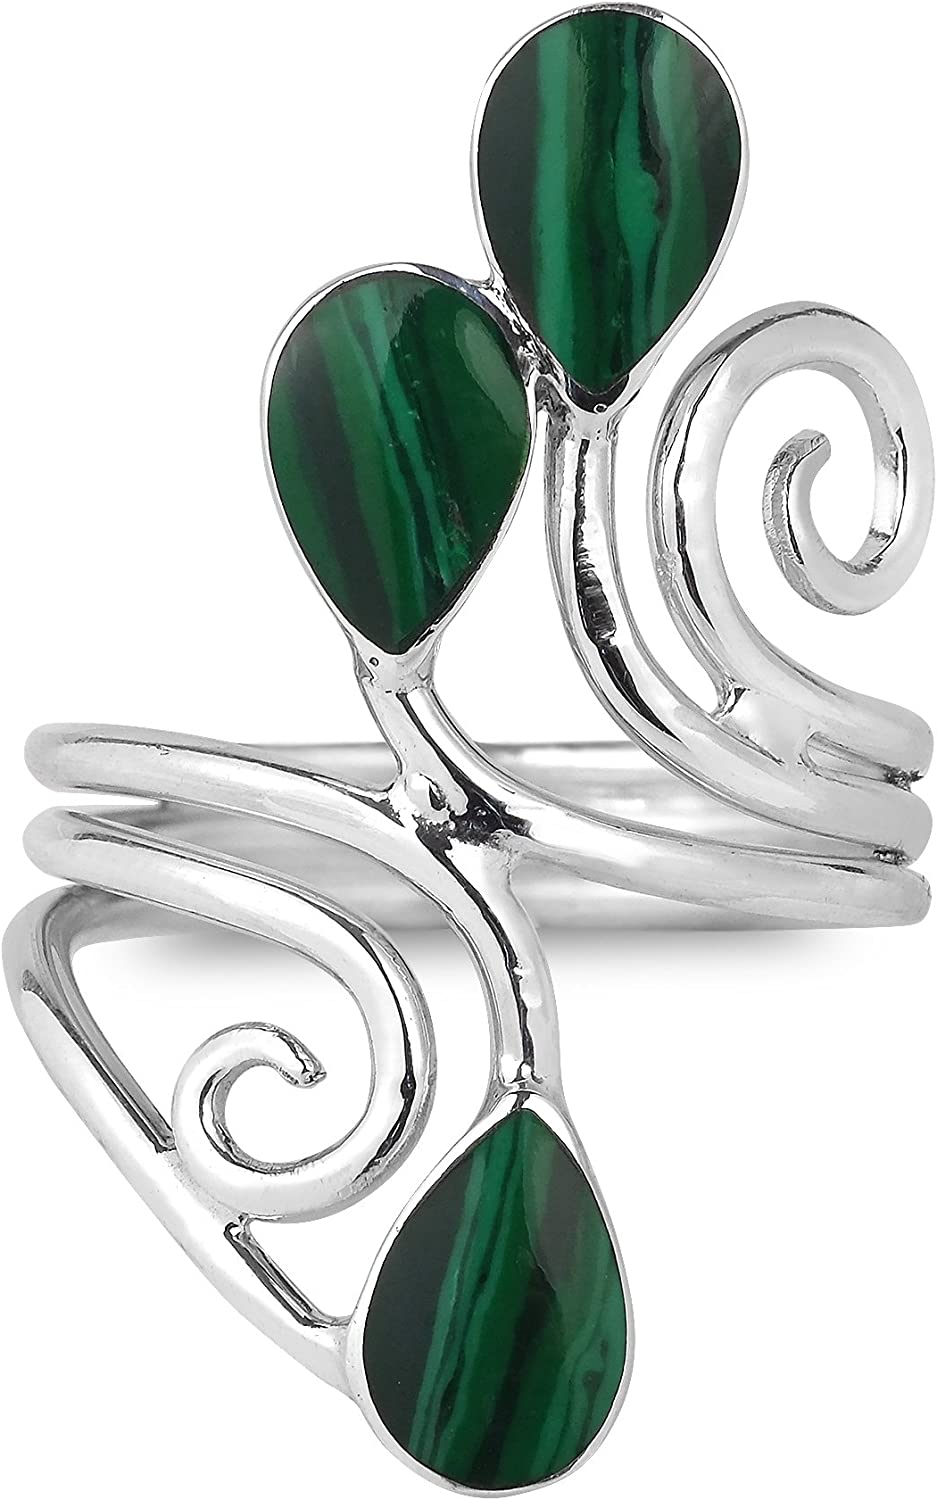 Floral Vine Ornate Teardrop Green Malachite Sterling Silver Ring